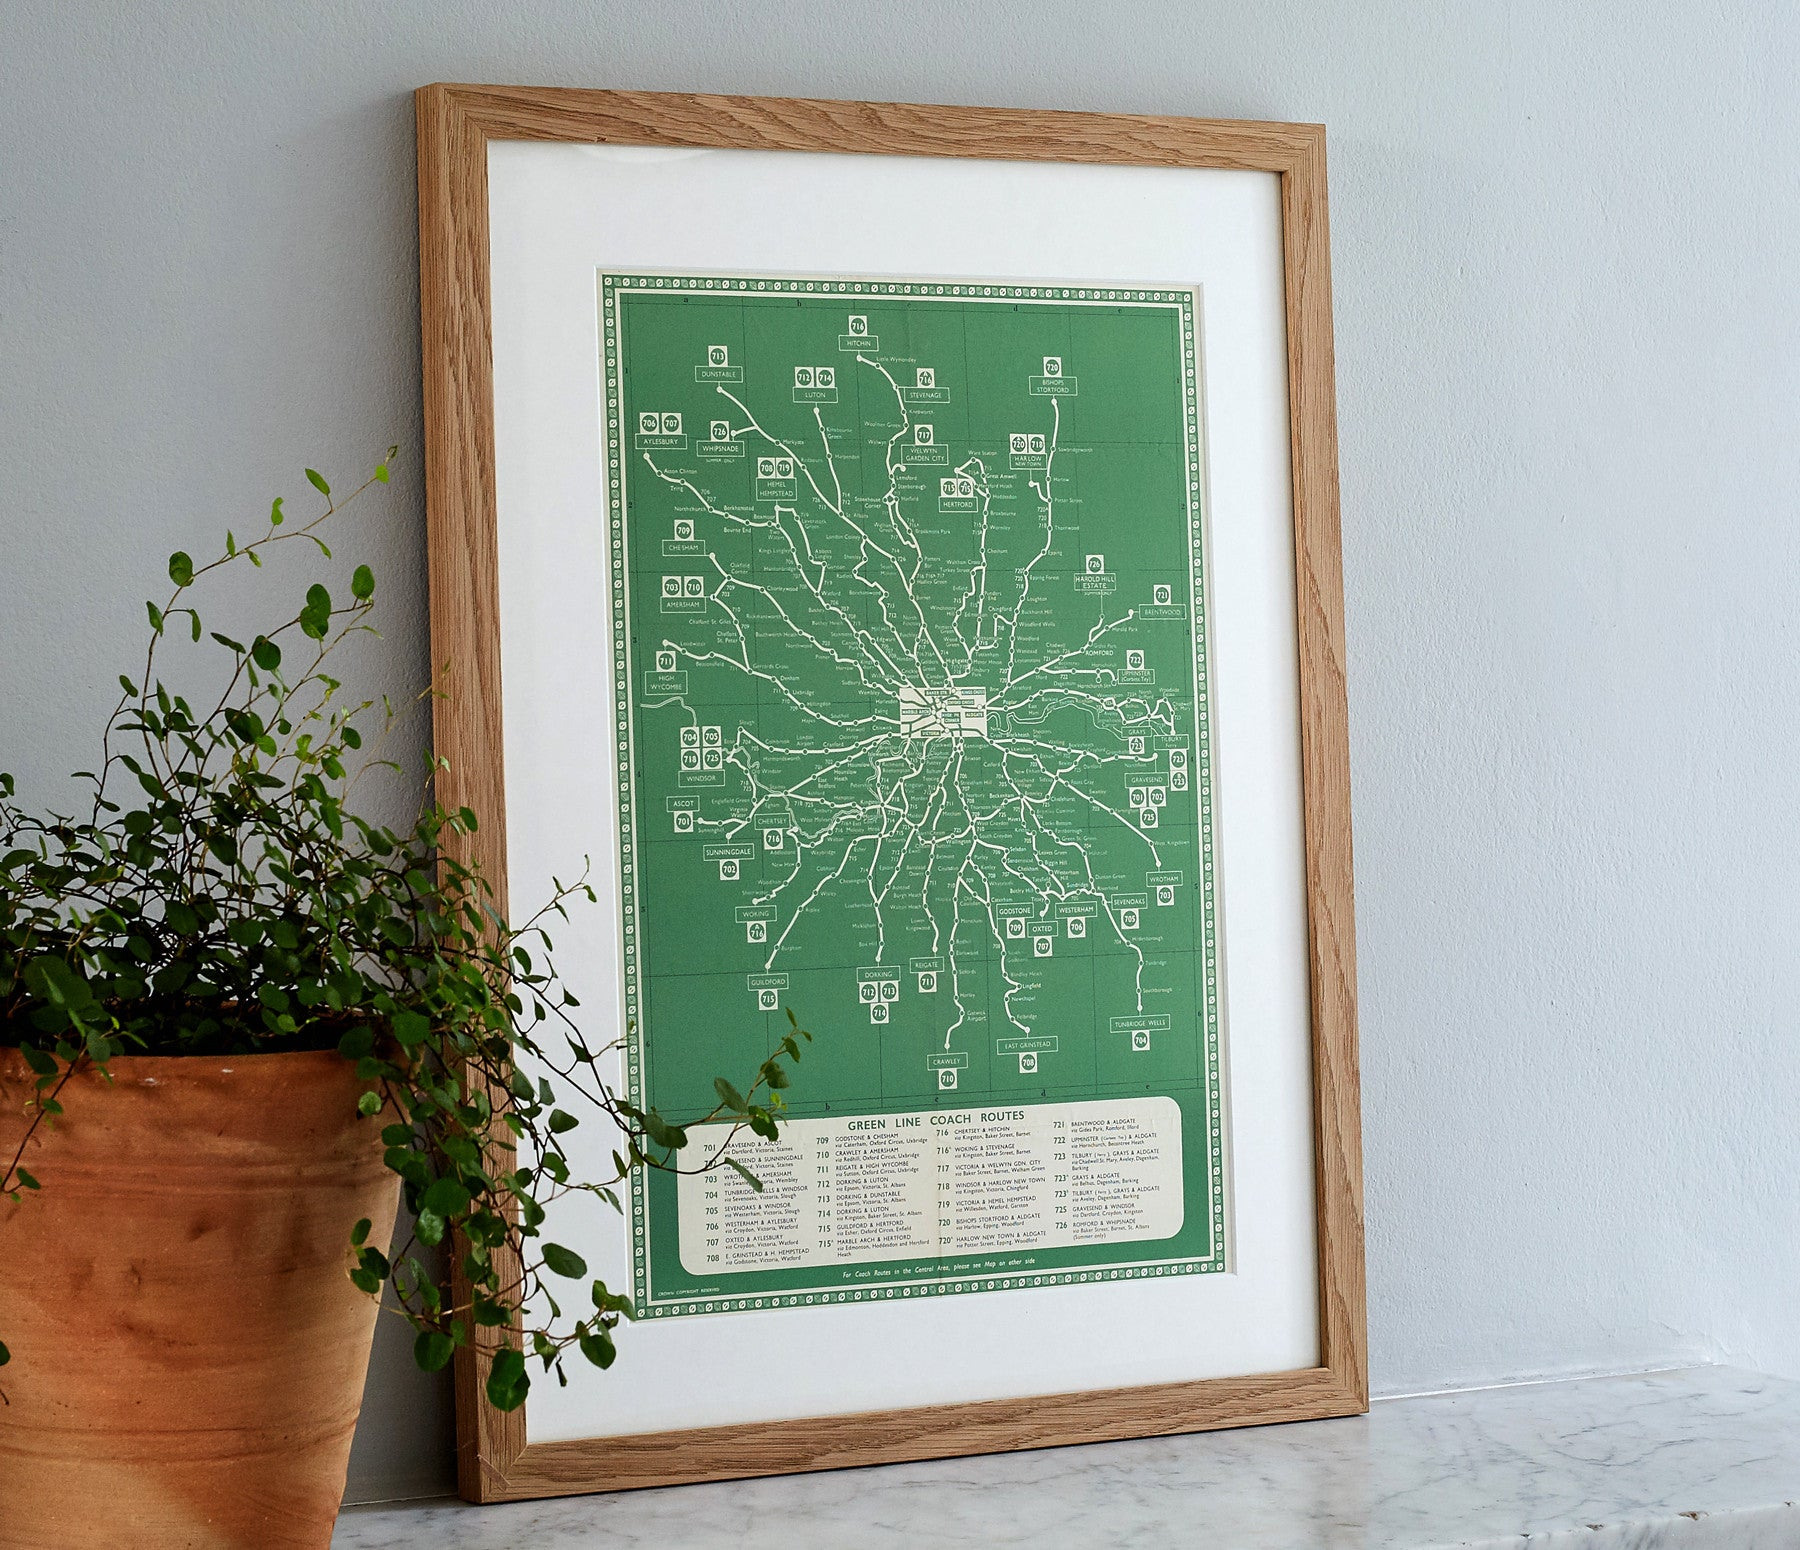 1956 Original 'Green Line Bus' Map with Oak Frame